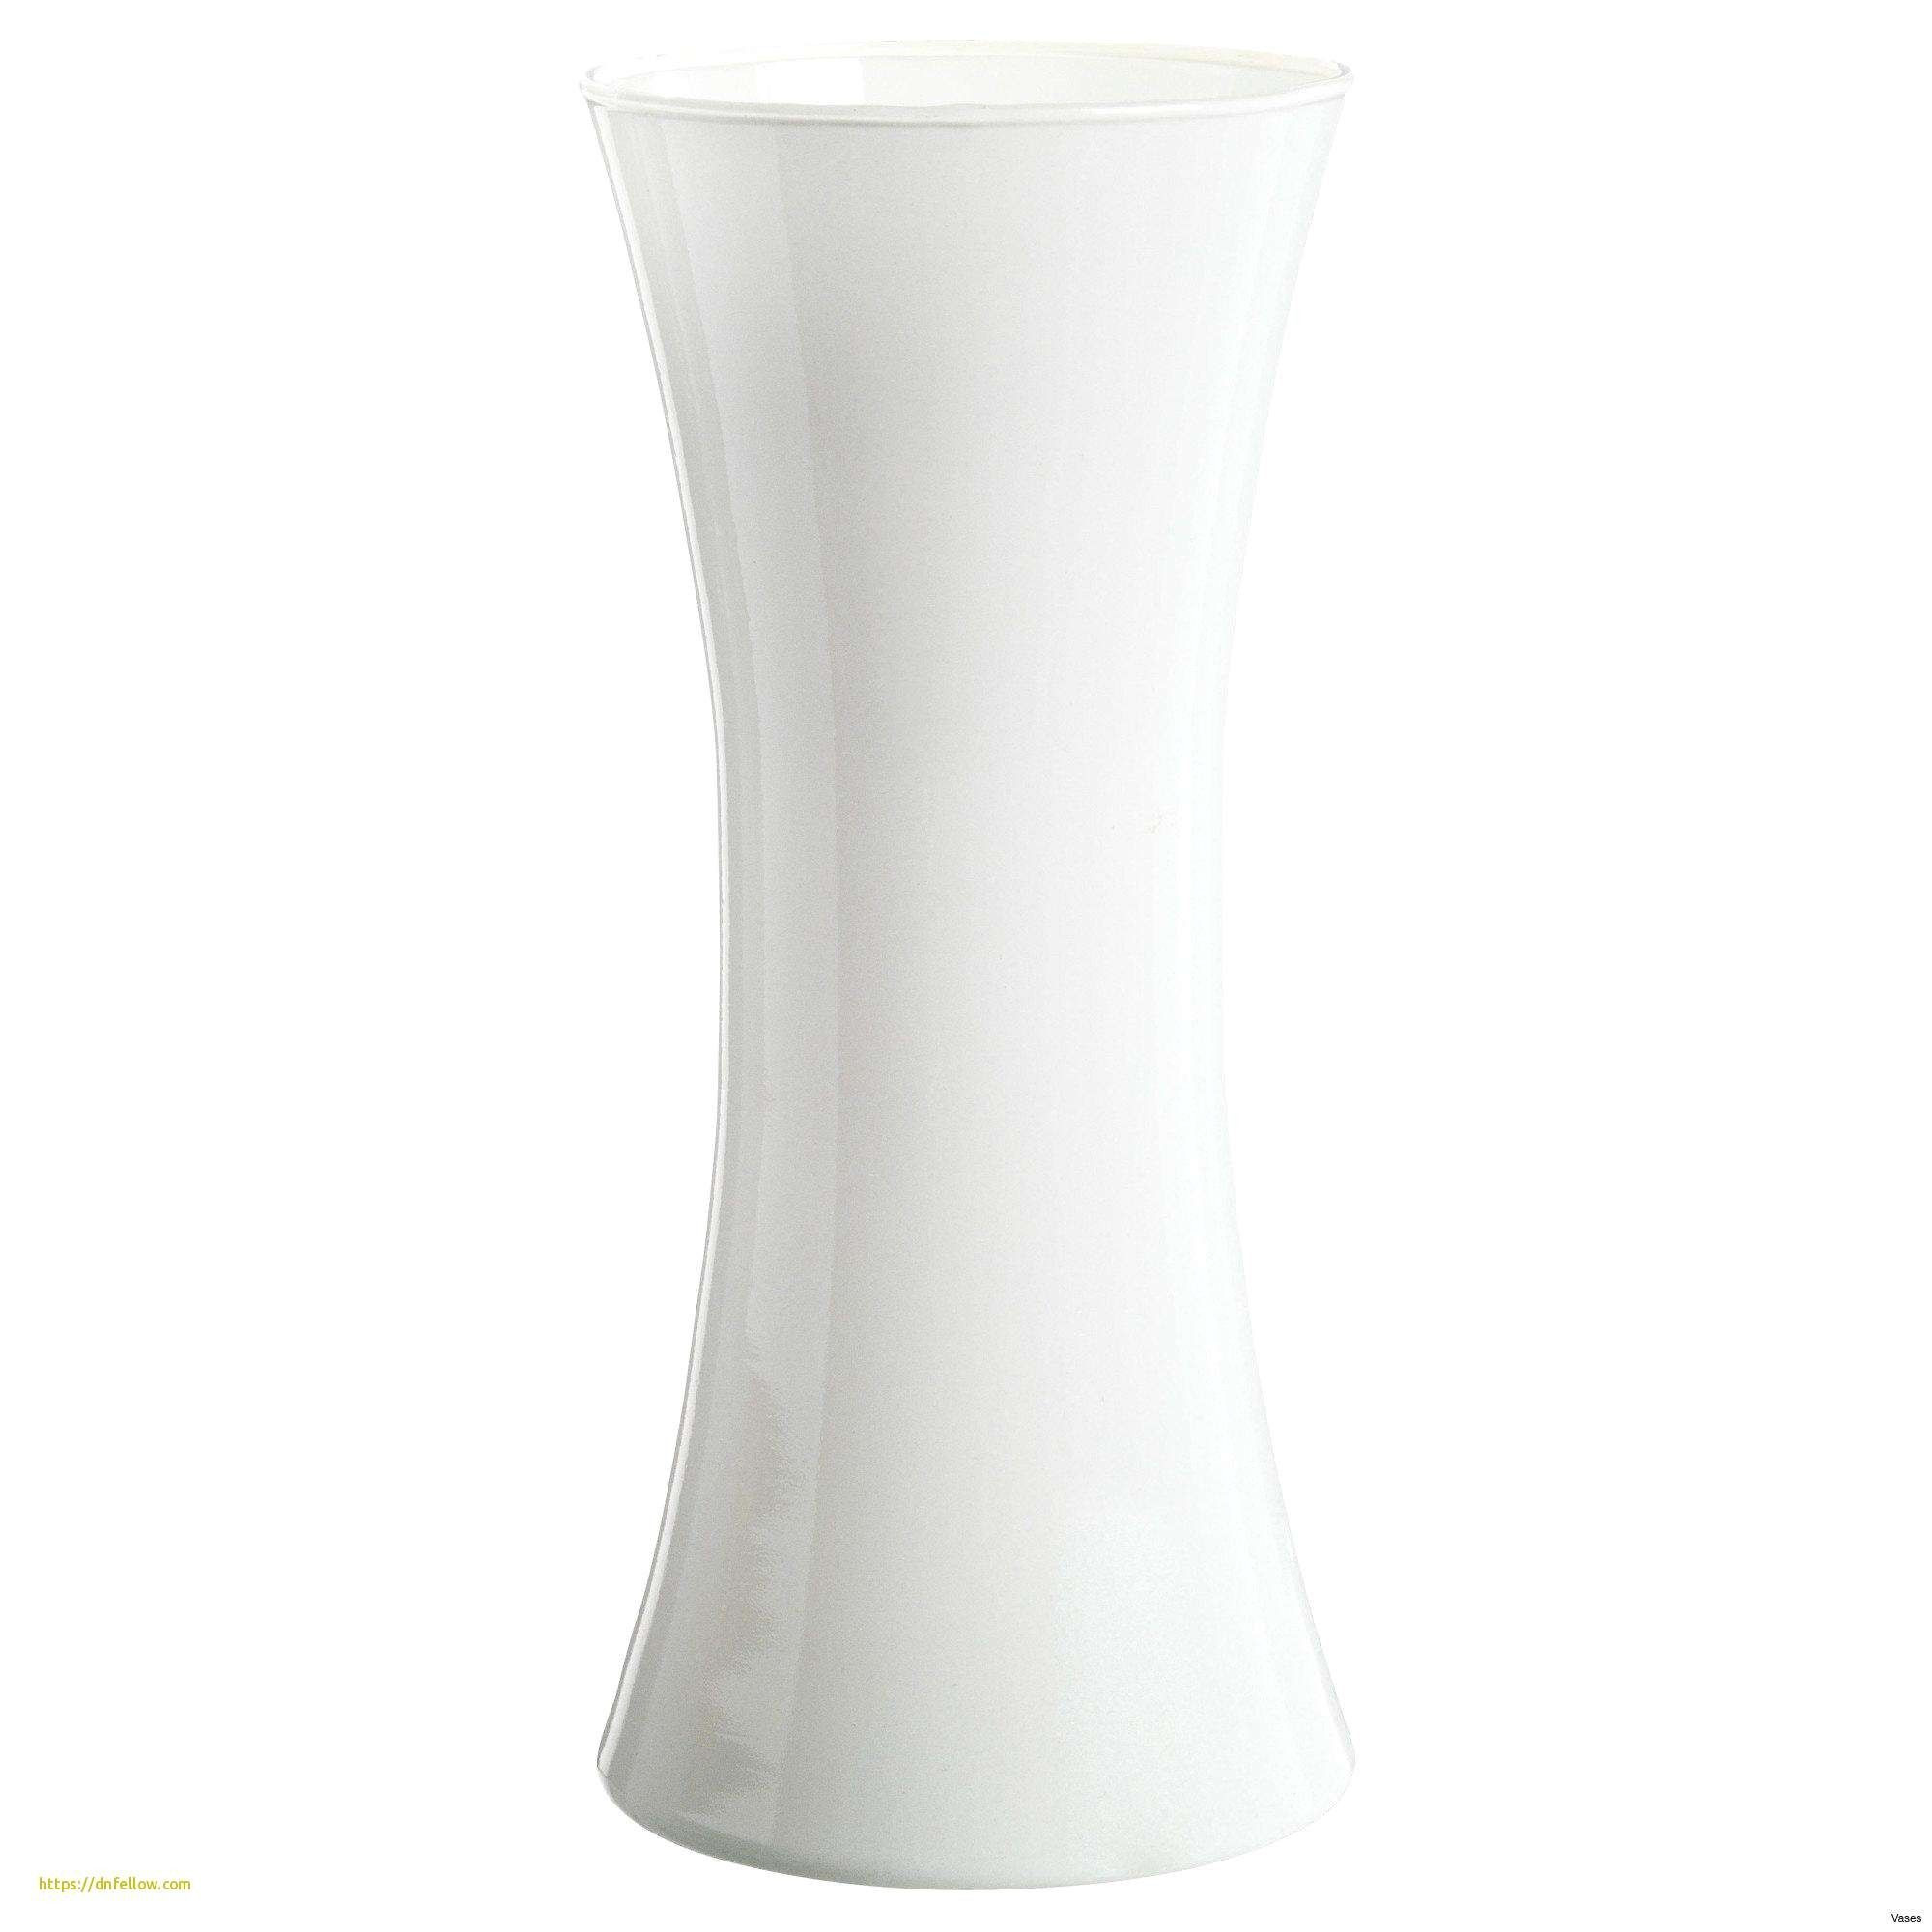 white ceramic geometric vase of white vase set new white floor vase ceramic modern 40 inchl home intended for white vase set new white floor vase ceramic modern 40 inchl home design ikea inch